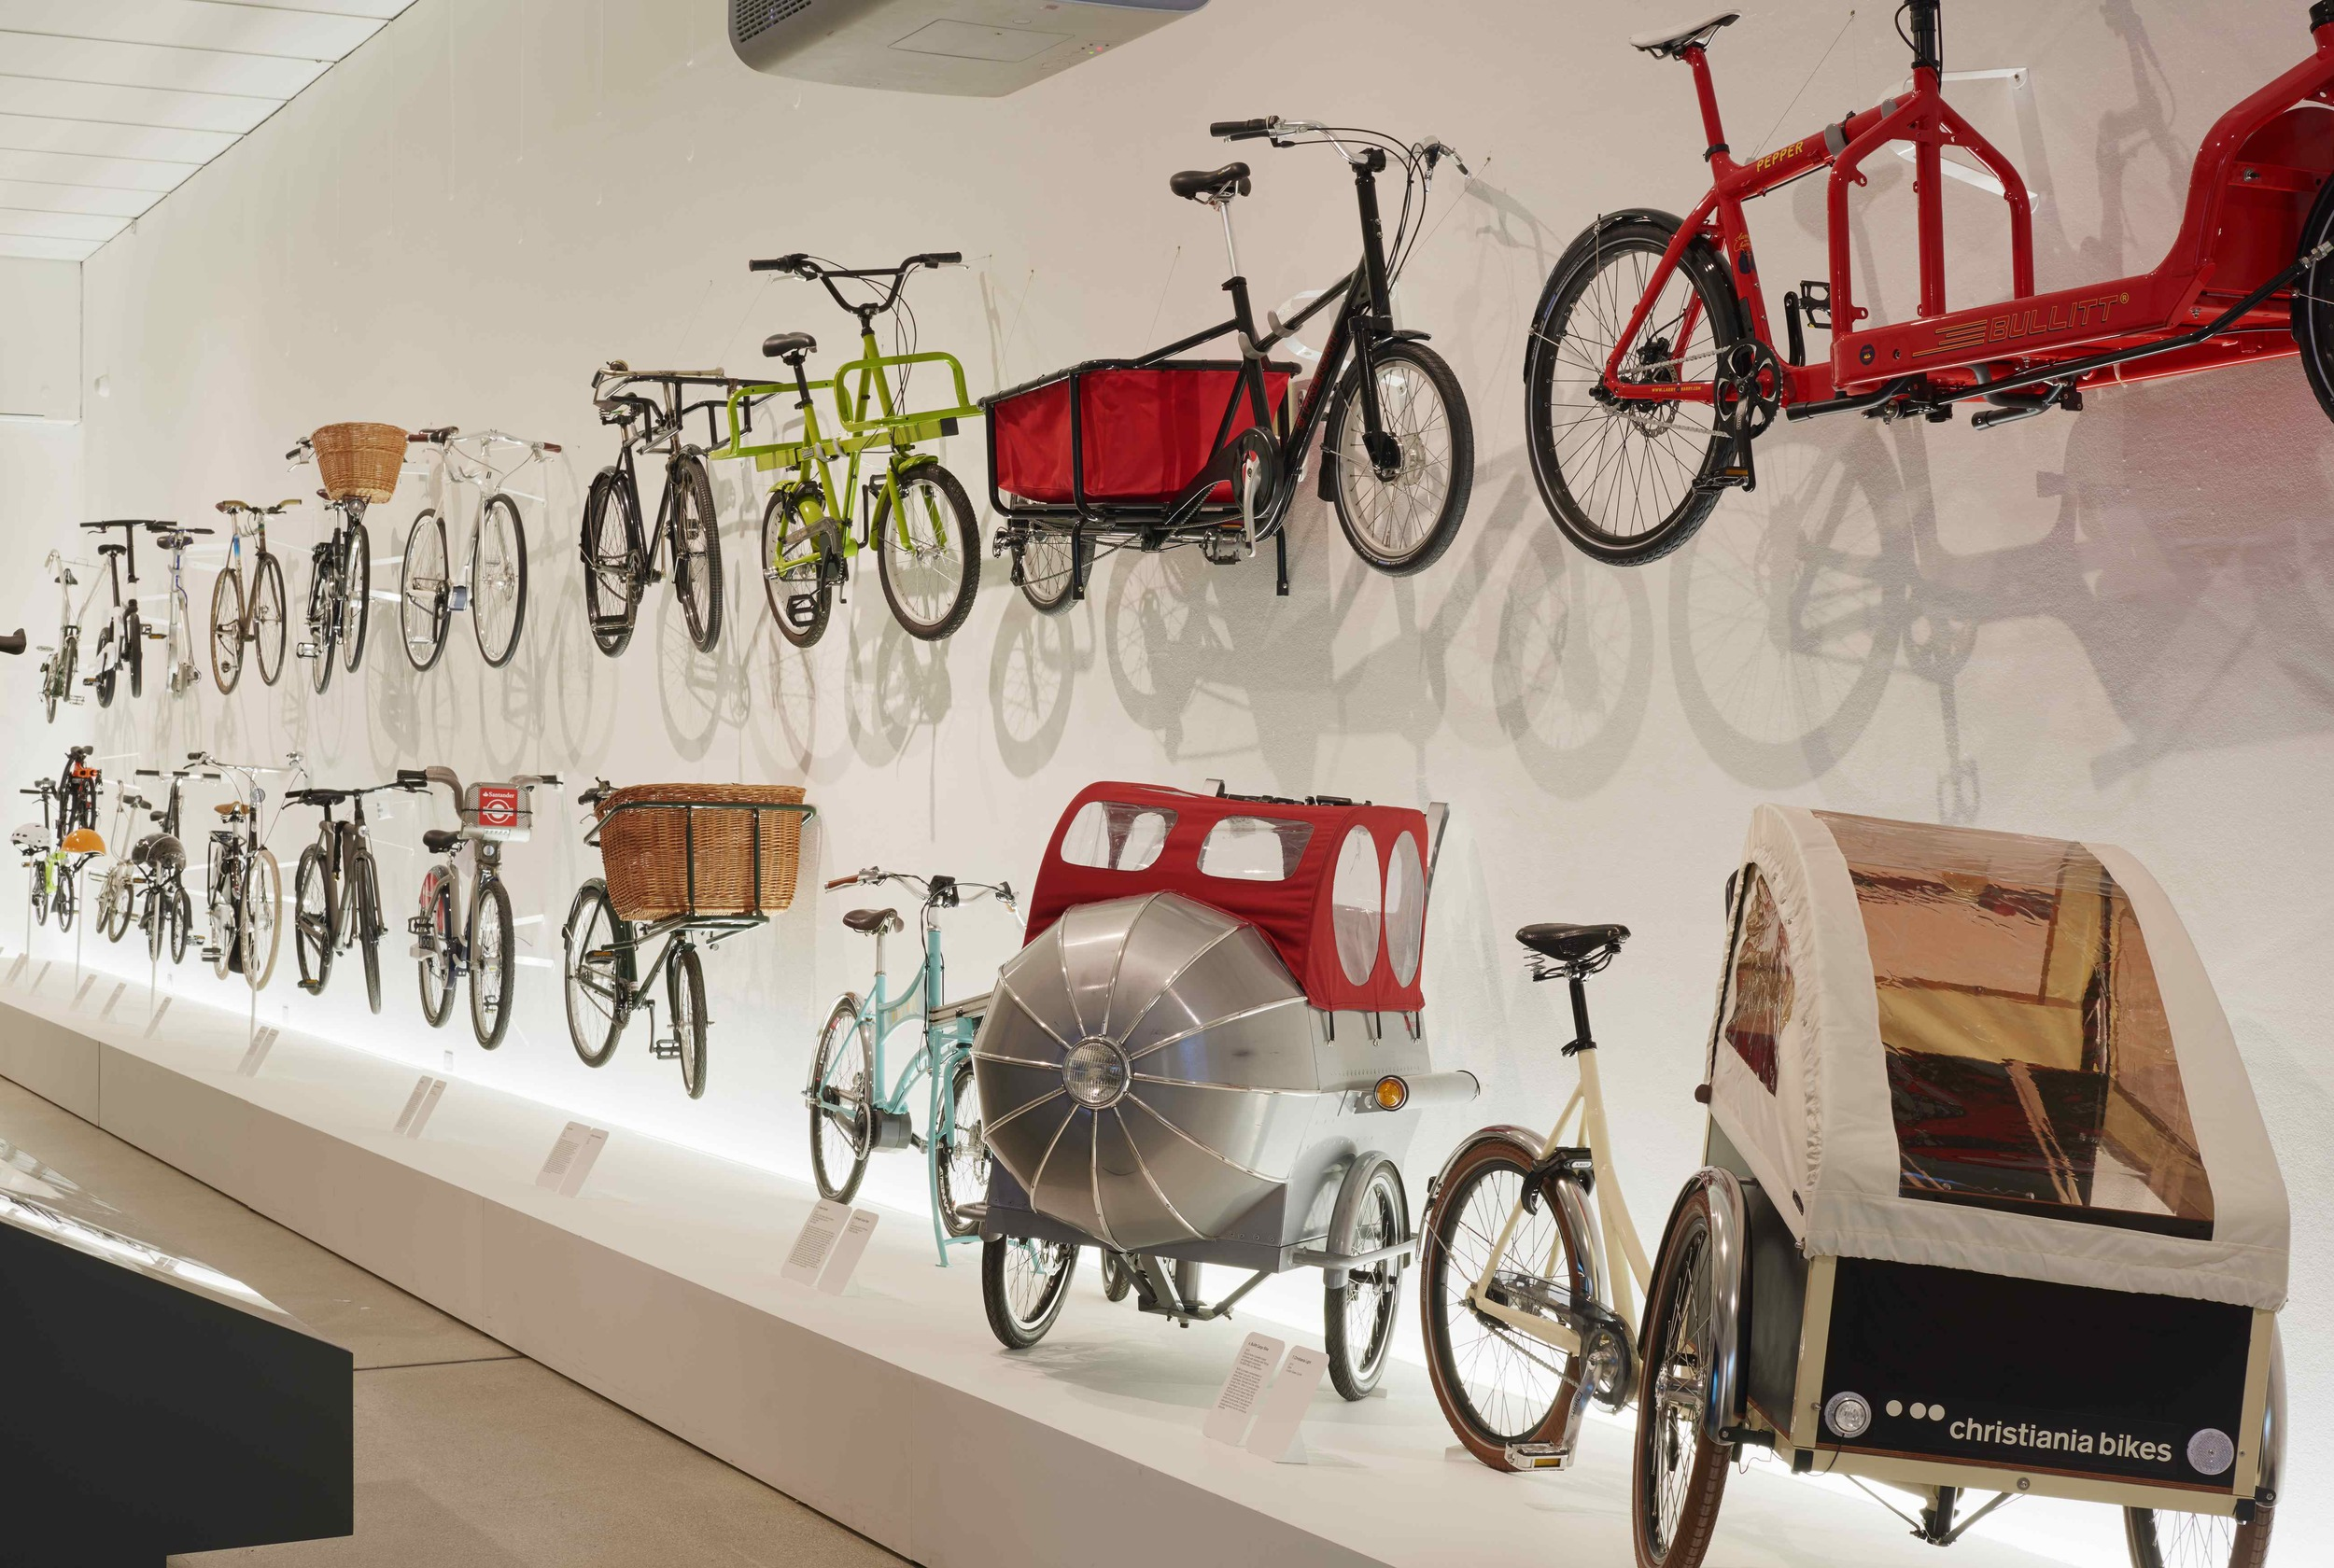 The Main hall including a range of cargo bikes, photographed by James Harris